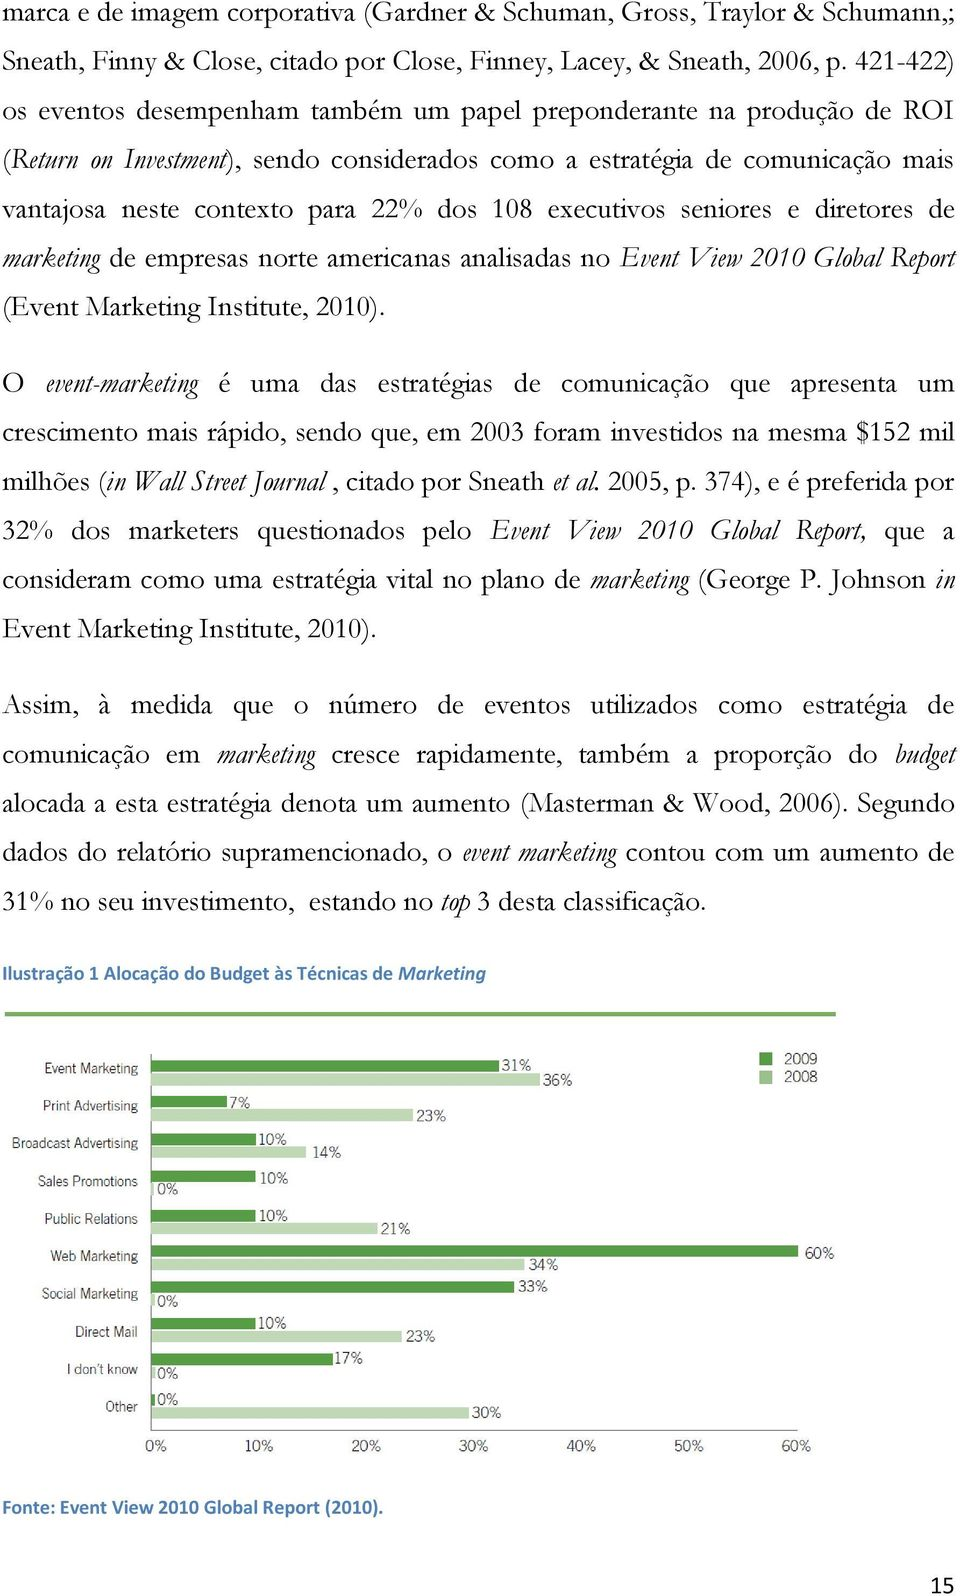 108 executivos seniores e diretores de marketing de empresas norte americanas analisadas no Event View 2010 Global Report (Event Marketing Institute, 2010).